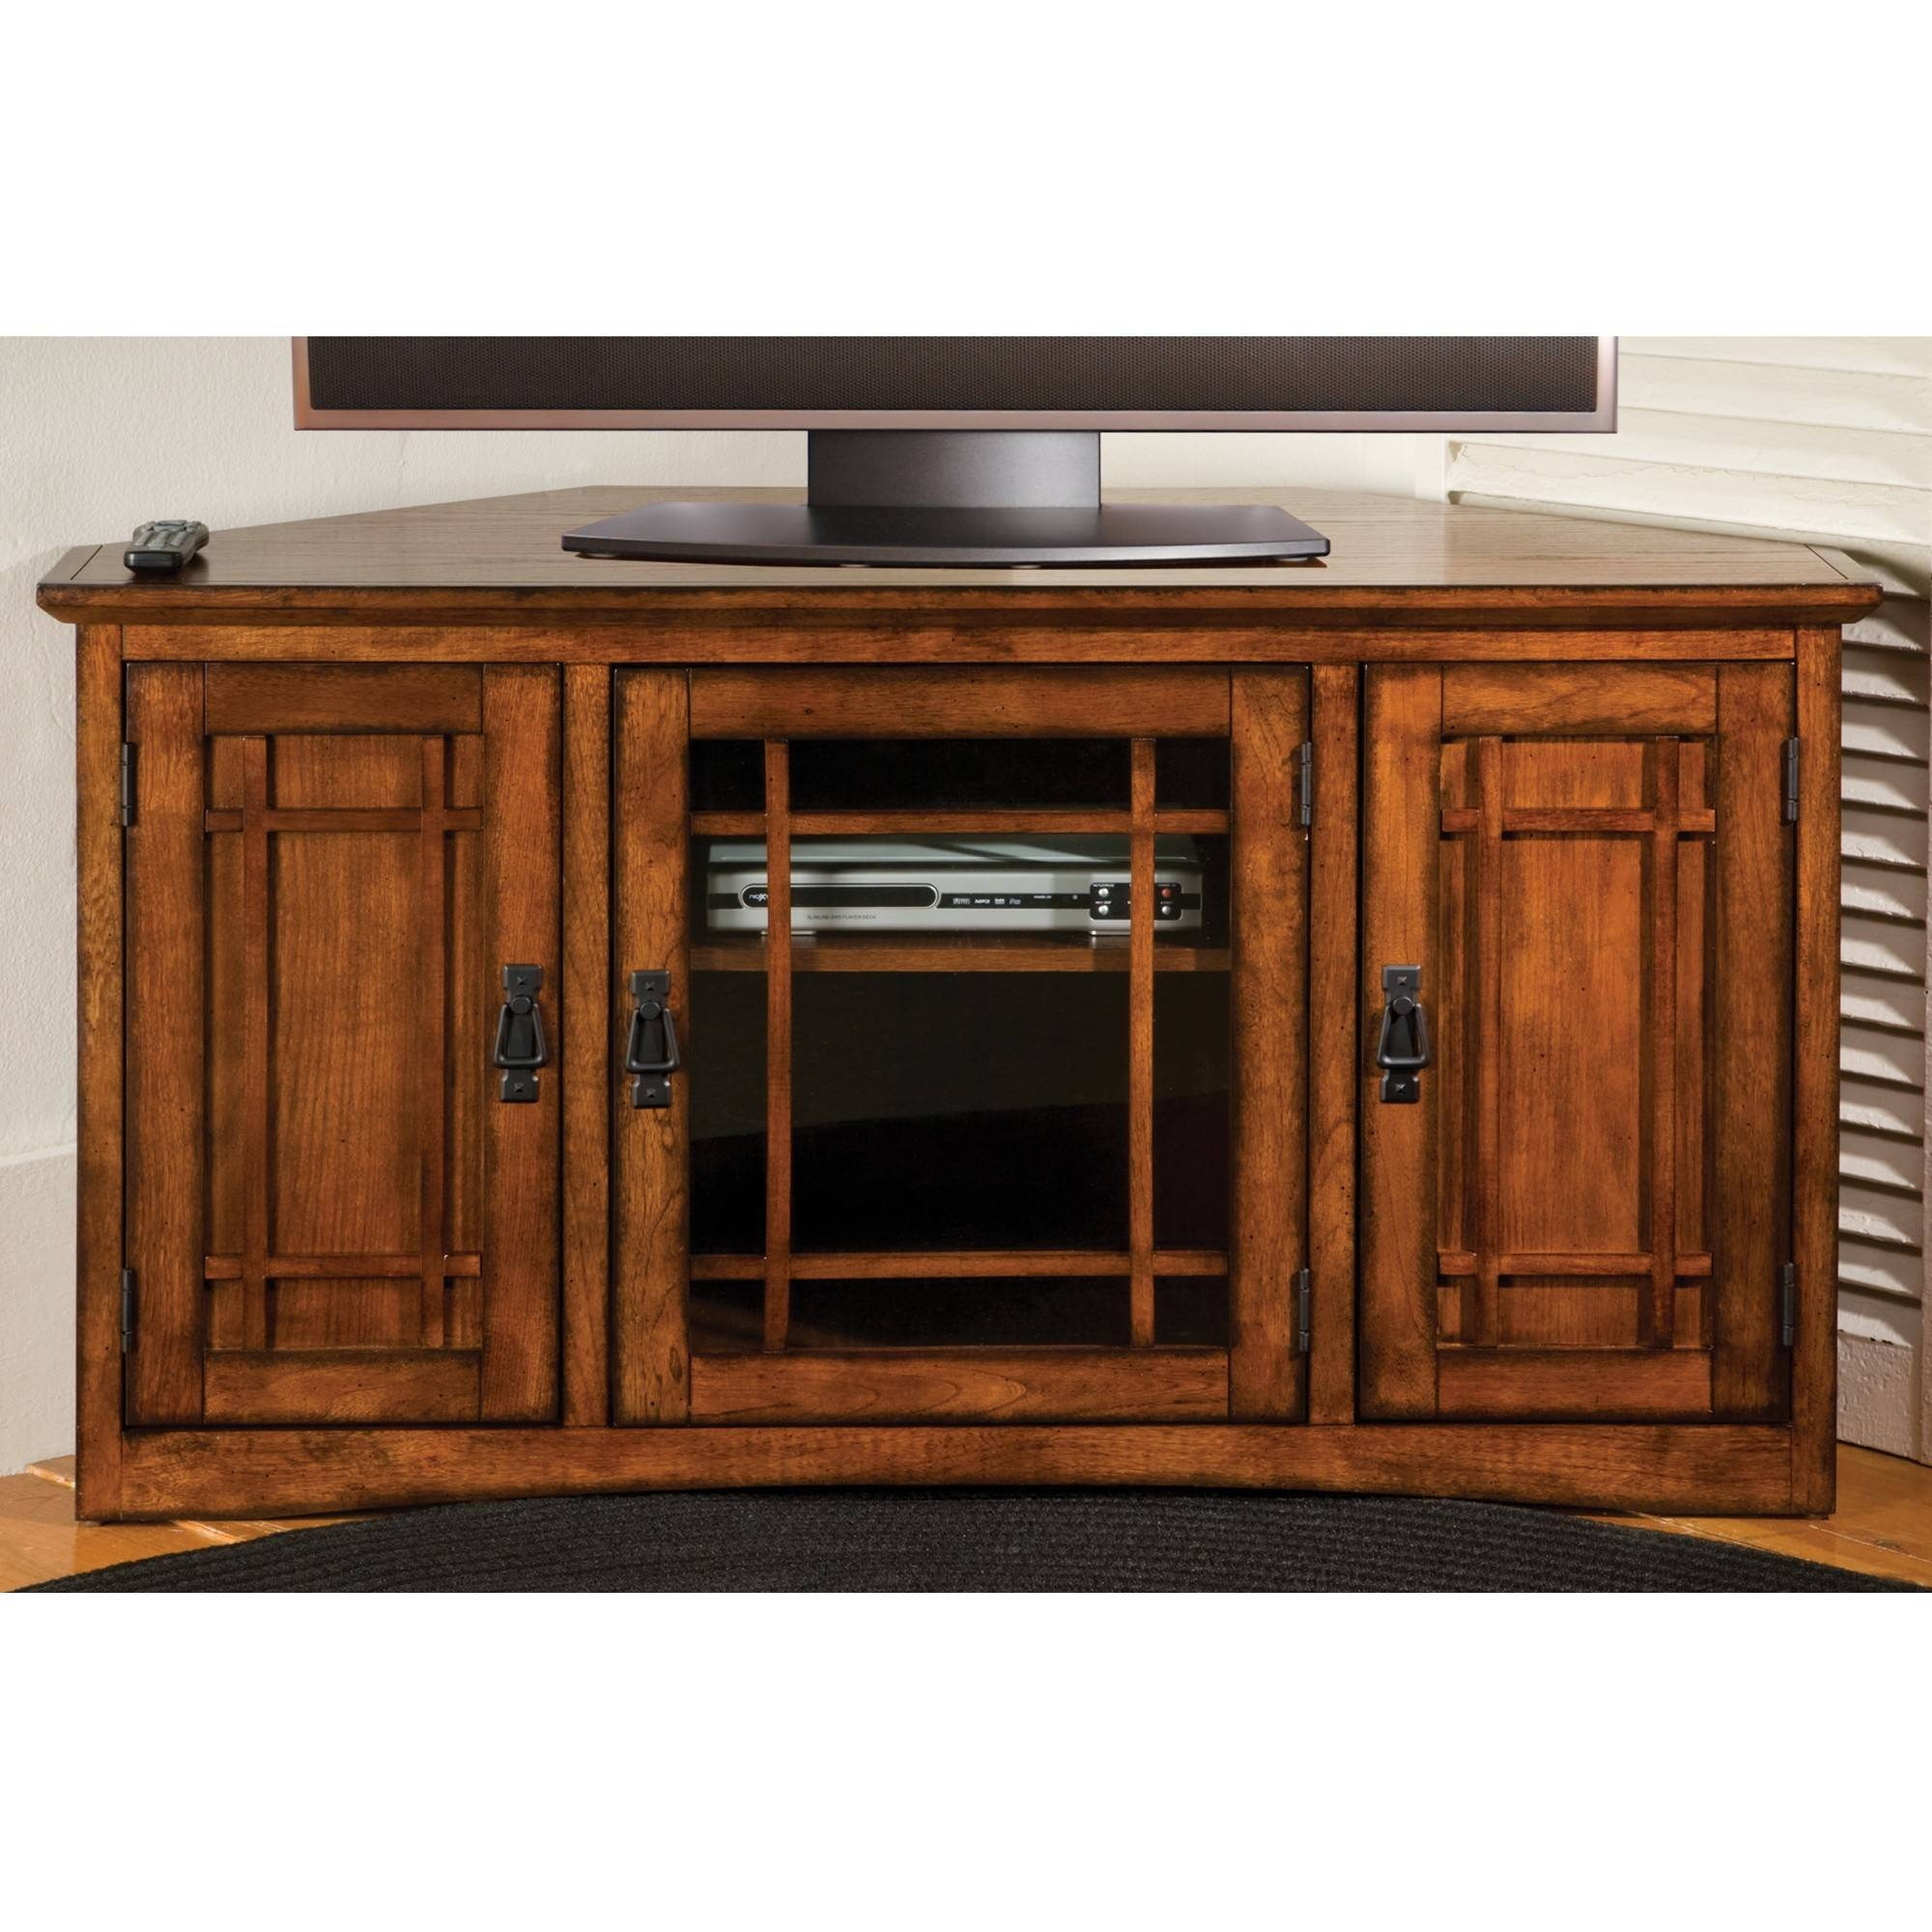 Awesome Corner Tv Cabinet With Doors For Your Lovely Home pertaining to Corner Tv Cabinets for Flat Screens With Doors (Image 1 of 15)